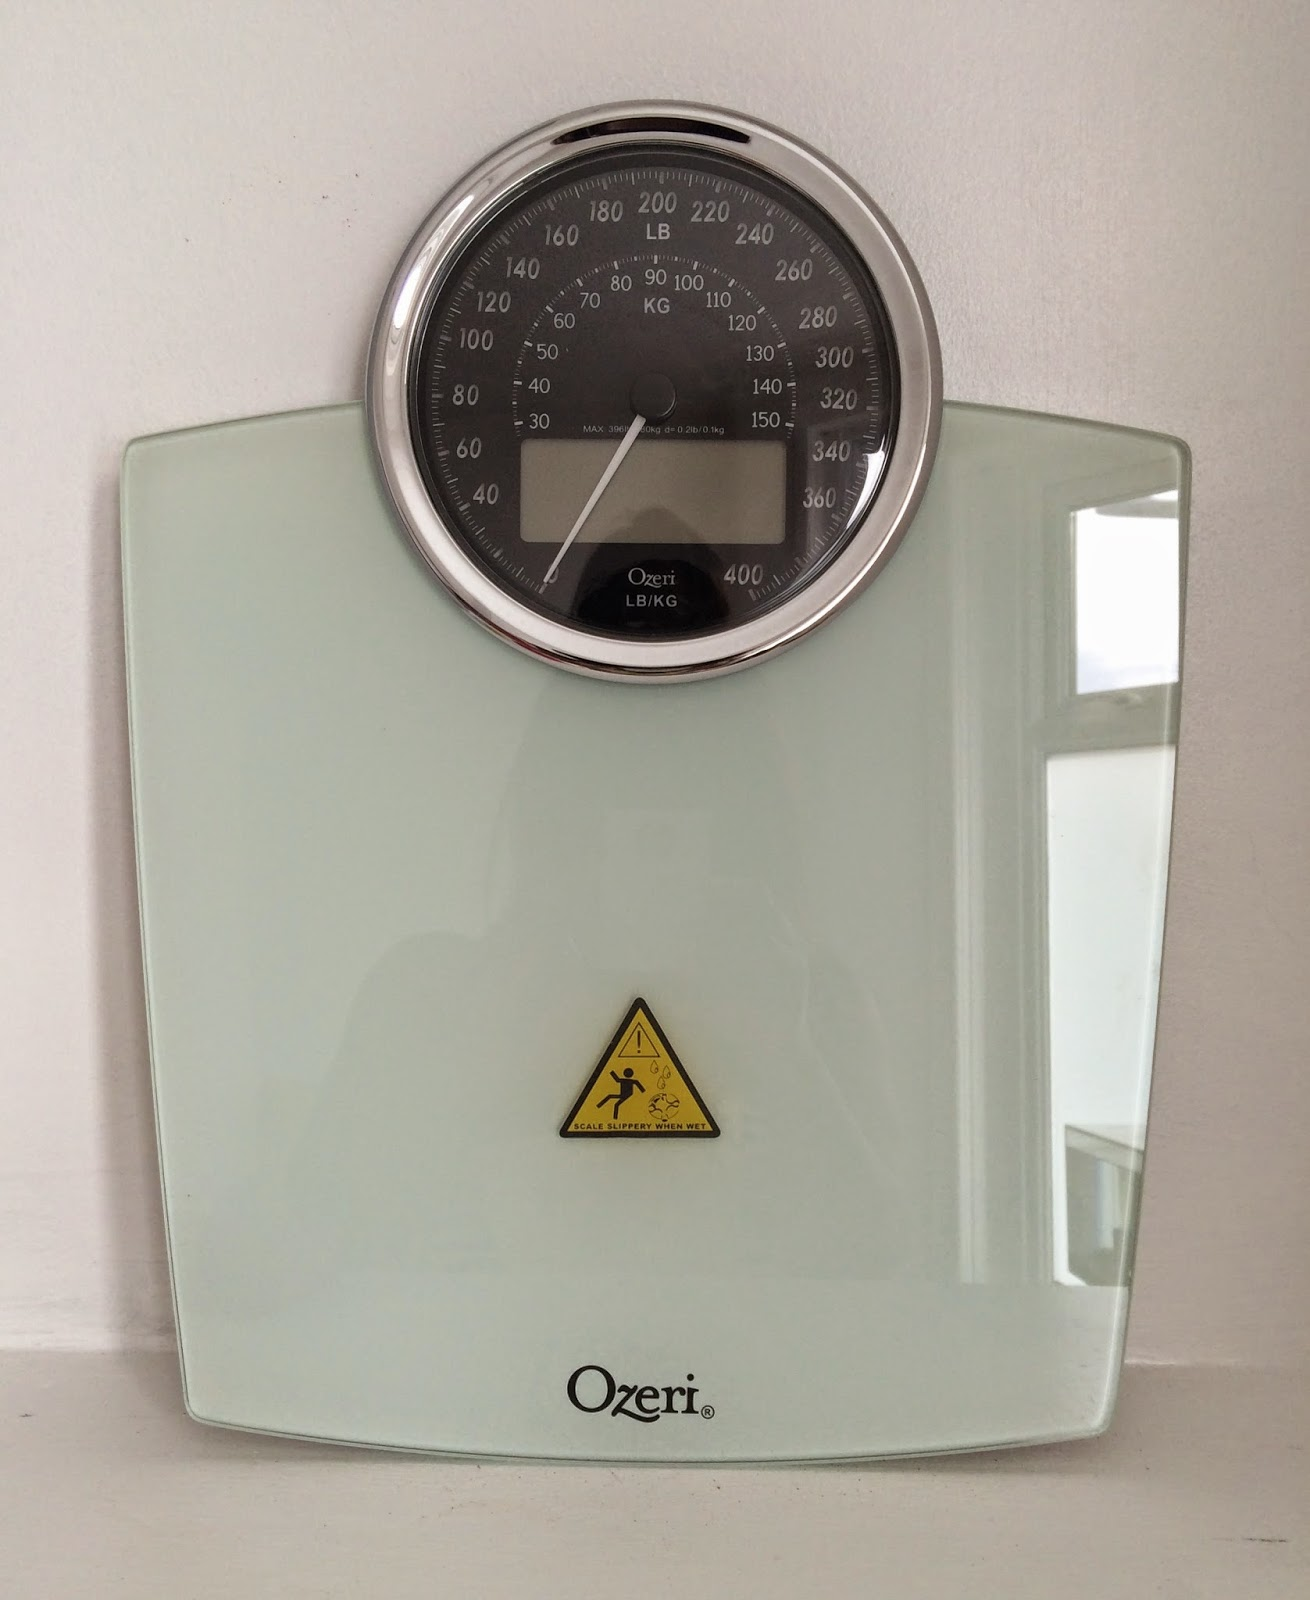 Bathroom Scale Ratings: Pretty Luscious Things: Ozeri Digital Bath Scales Review